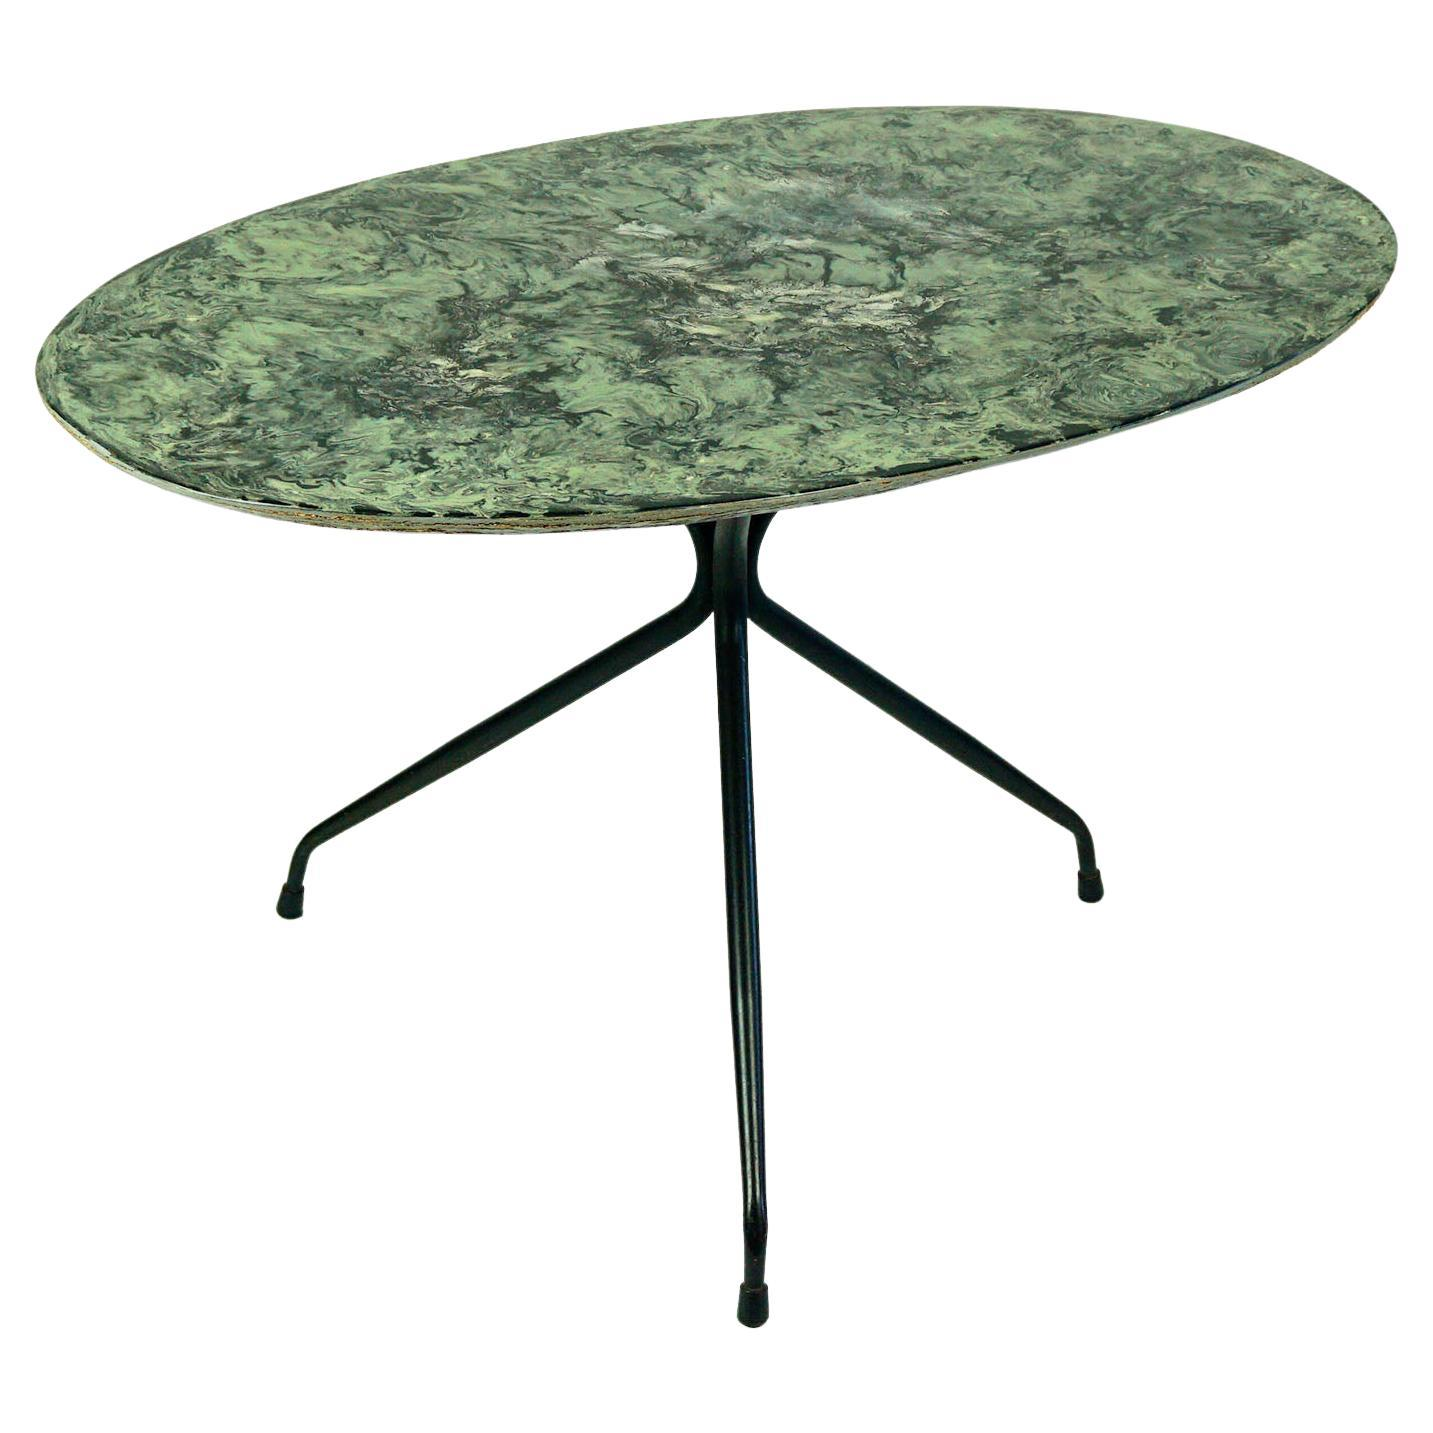 Italian Midcentury Oval Cocktail or Coffee Table with Faux Green Marble Top